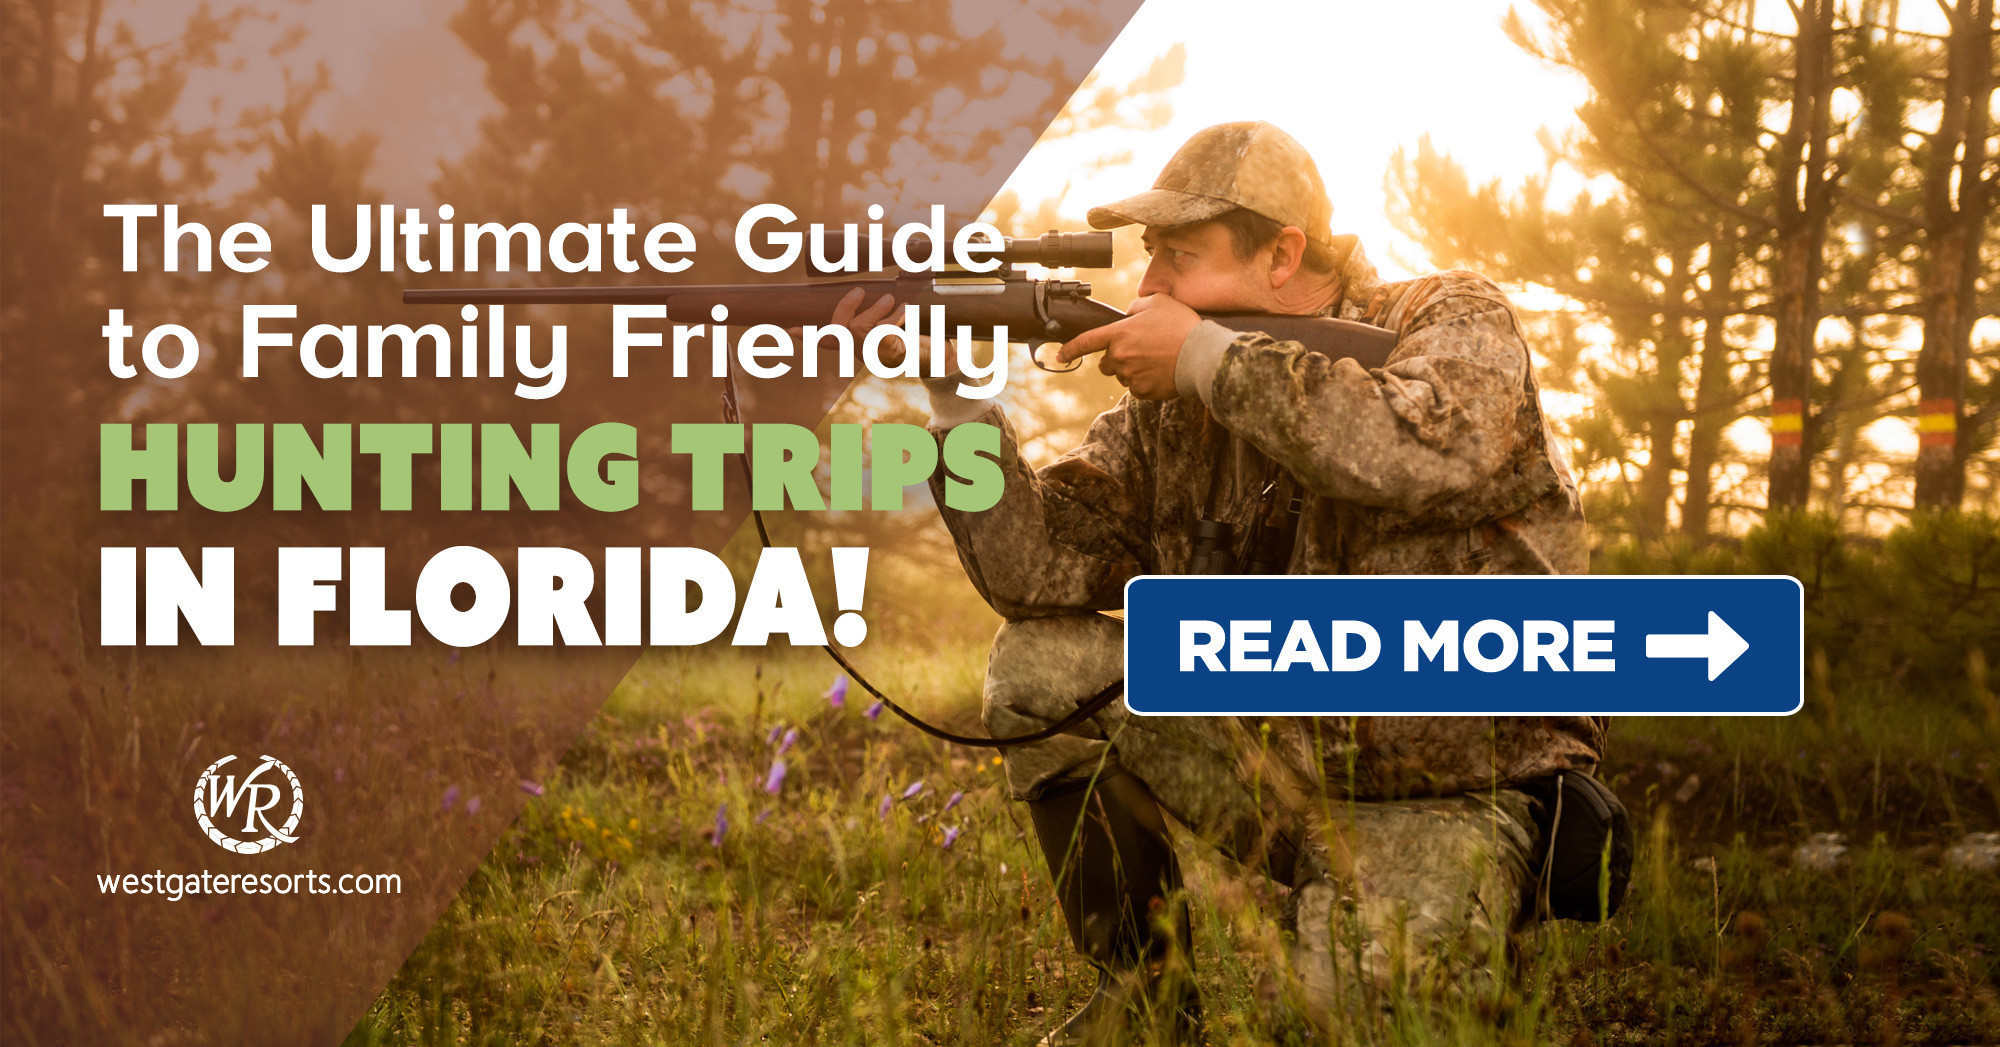 The Ultimate Guide to Family Friendly Hunting Trips in Florida!